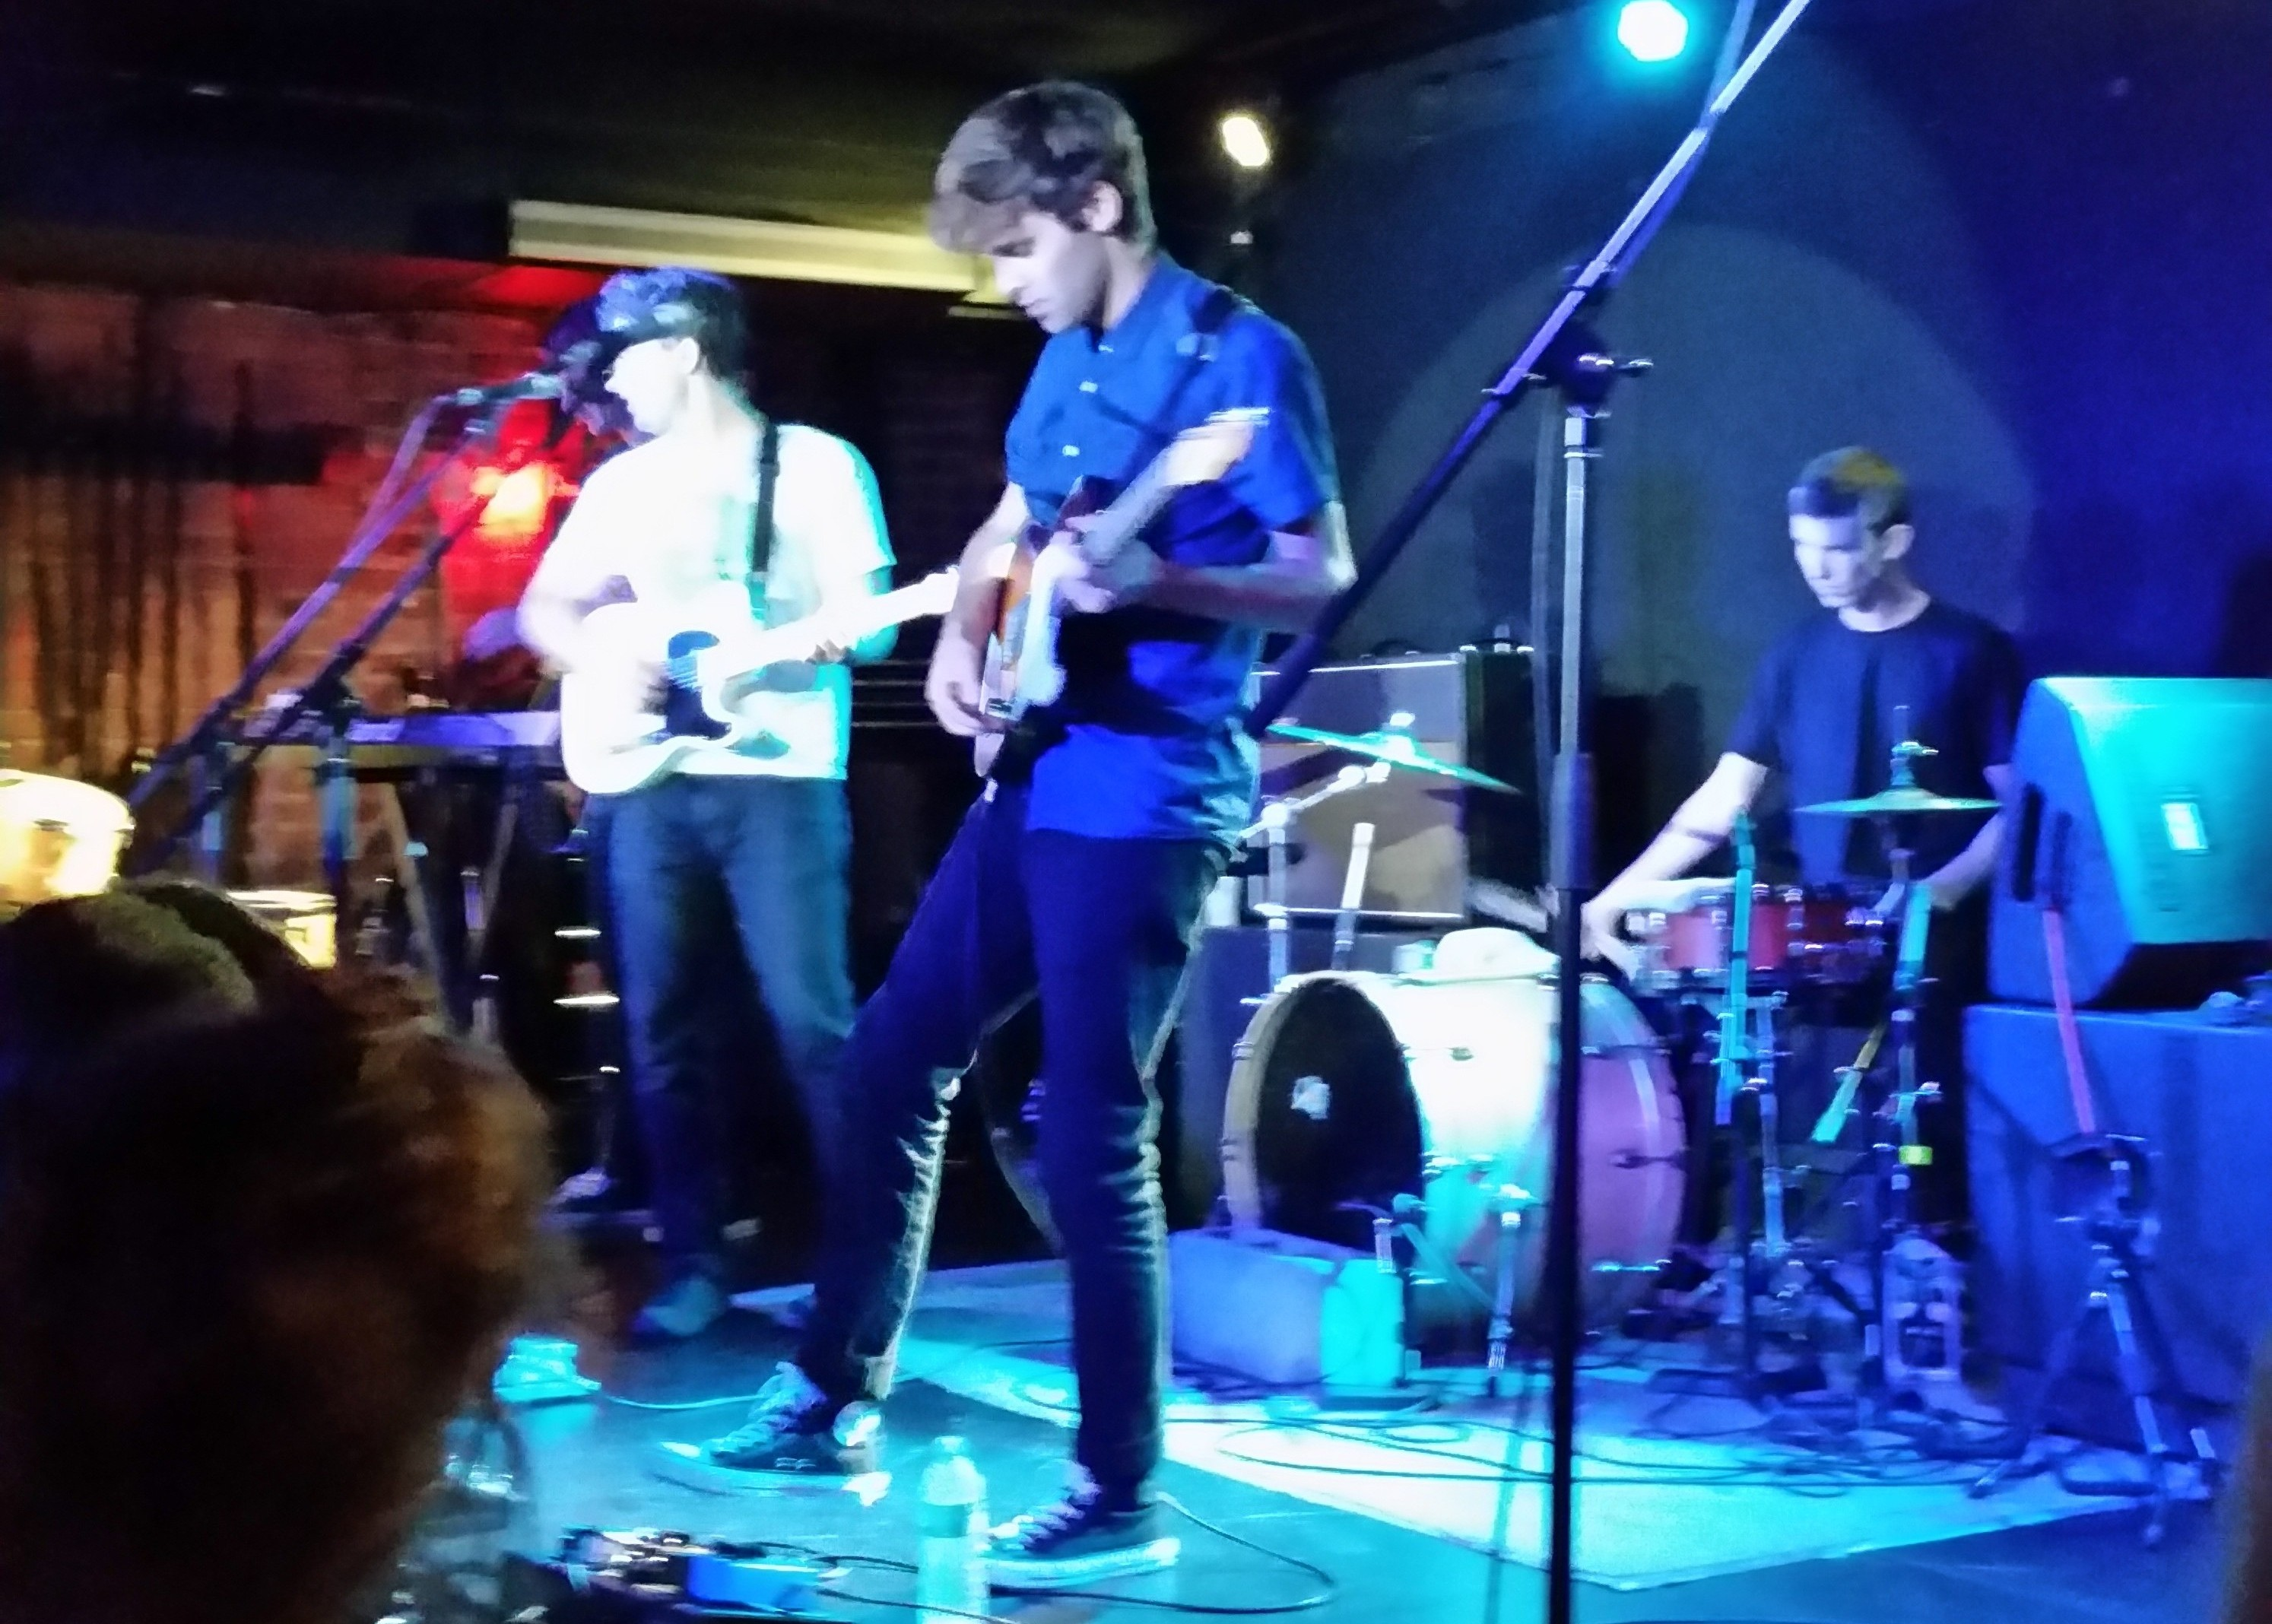 Alice Severin reviews Daywave's show in New York City at the Mercury Lounge.